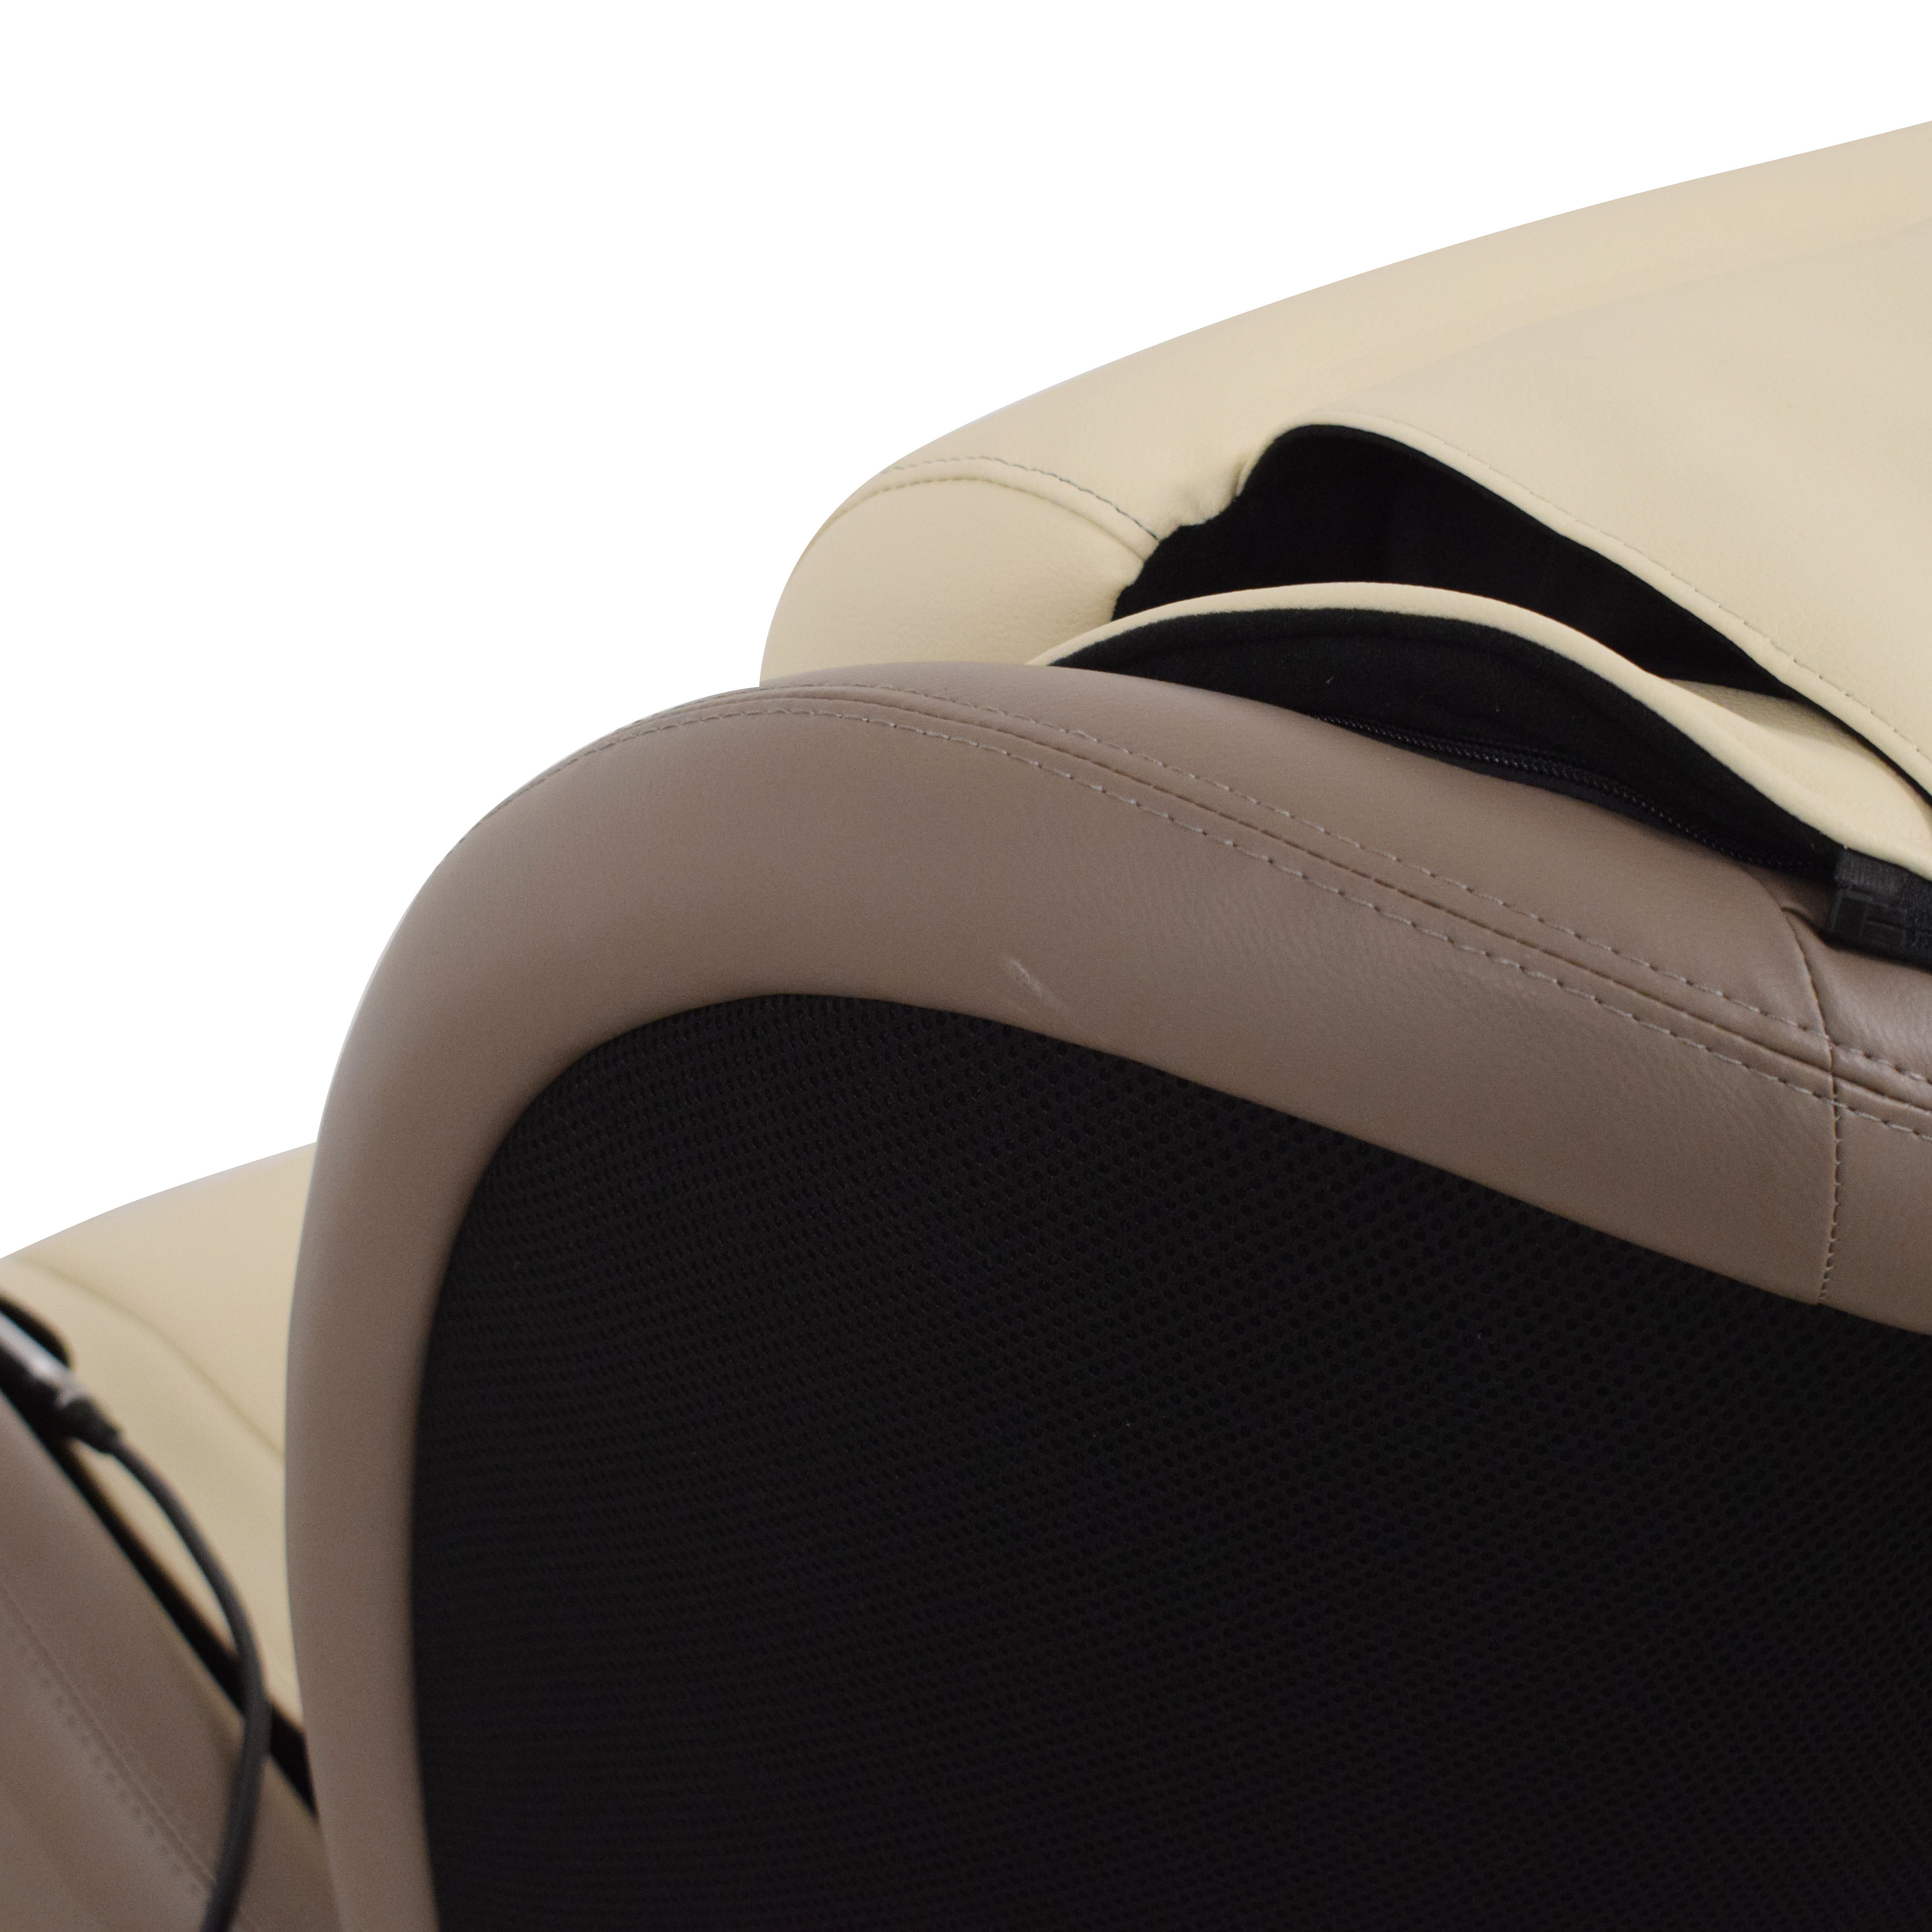 shop Human Touch Human Touch iJOY Massage Chair 4.0 online